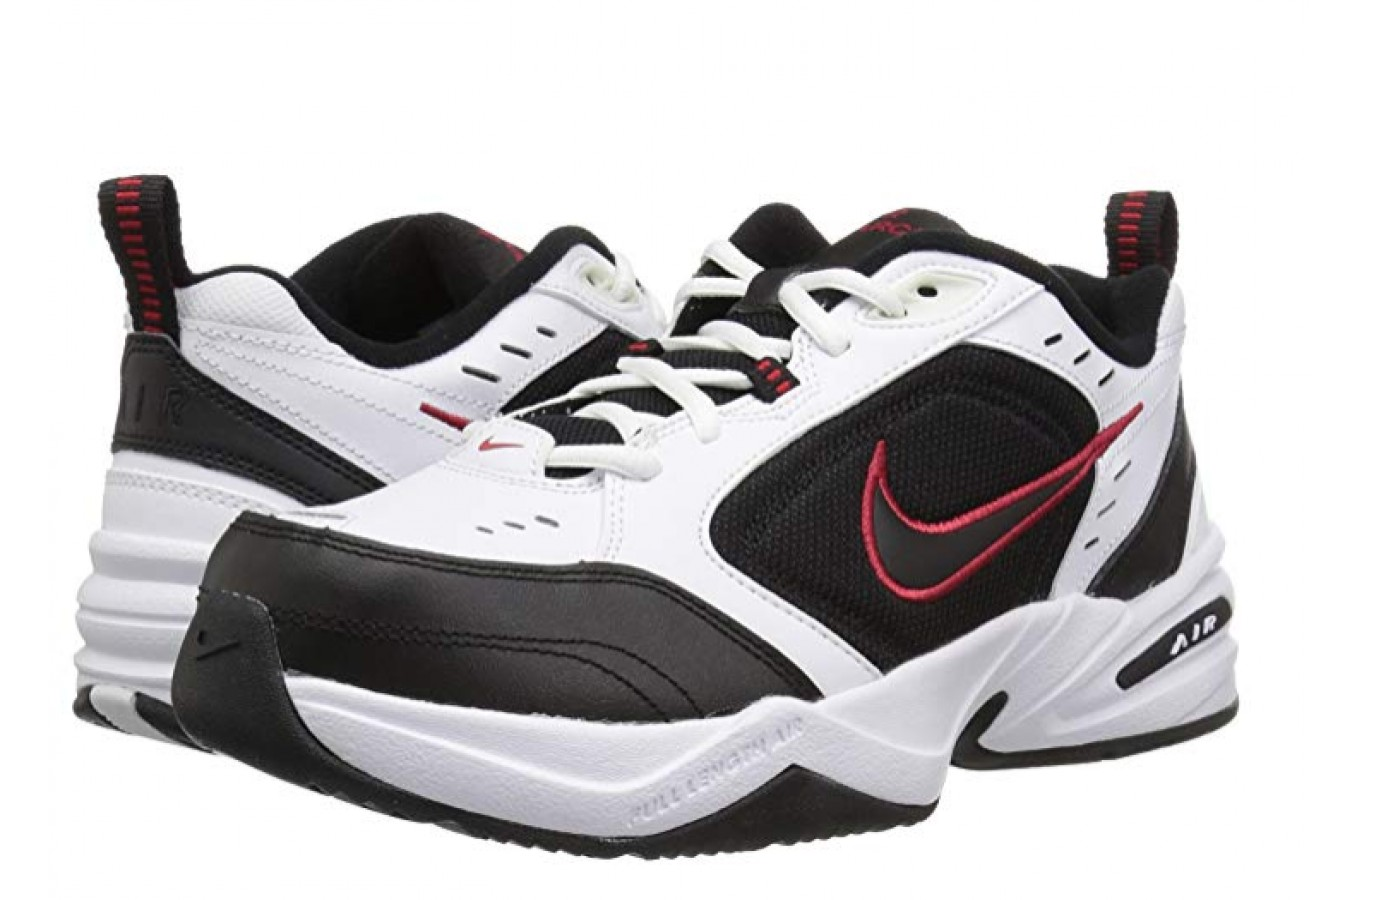 If you need an everyday shoe for running out on errands, doing light exercising at a gym, or walking, the Nike Air Monarch IV is perfect.